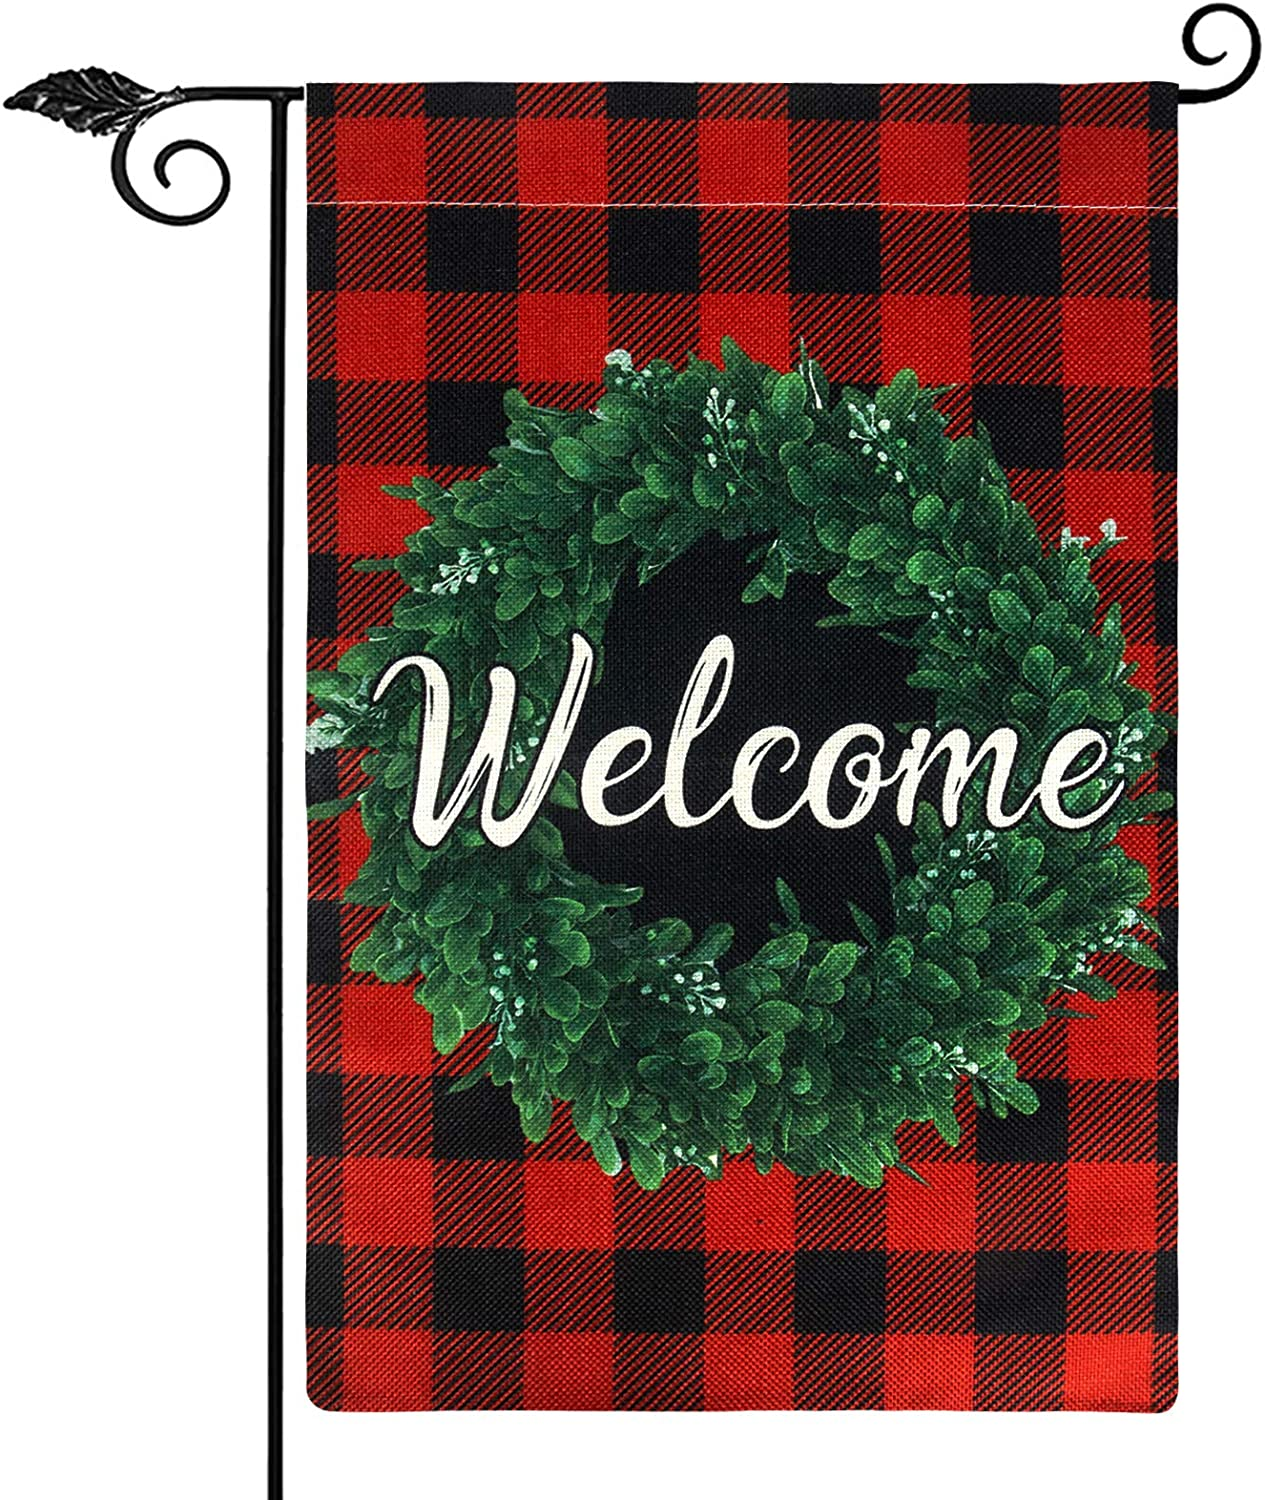 Unves Christmas Garden Flag, Vertical Double Sided Welcome Garden Flag Buffalo Check Plaid Winter Christmas Flag Burlap, Rustic Farmhouse Yard Outdoor Christmas Decoration 12.5 x 18 Inch